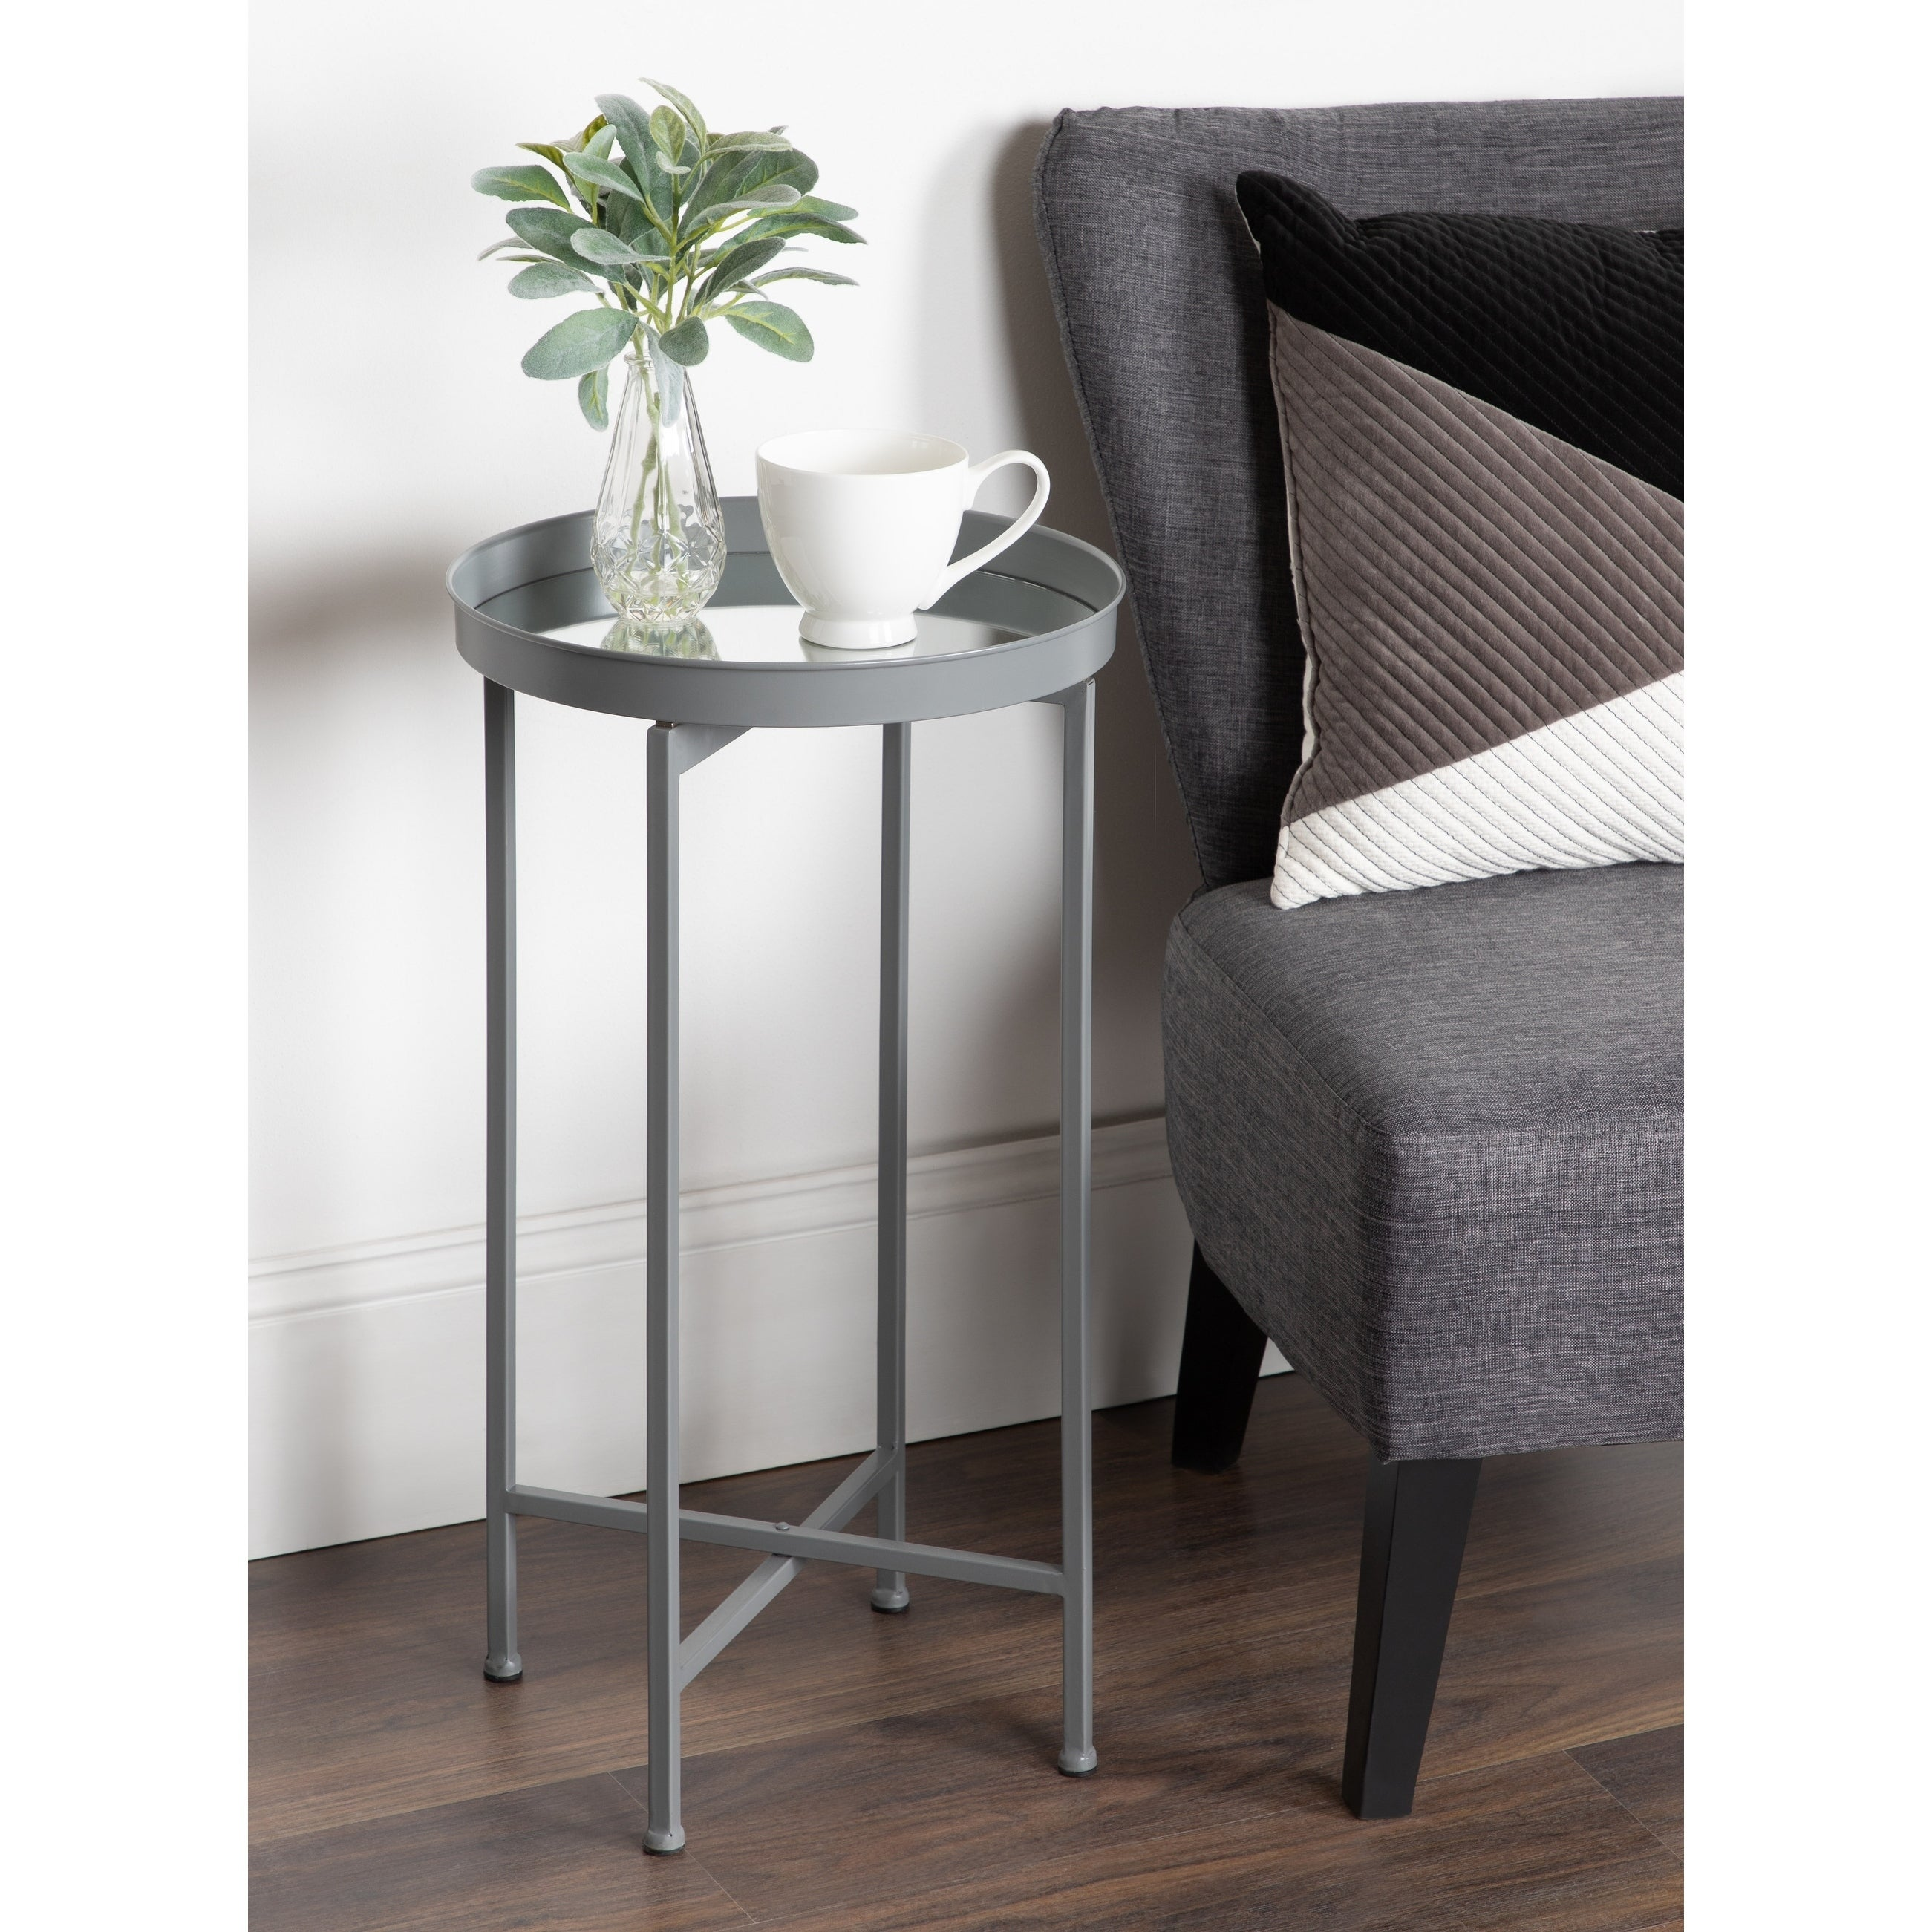 - Shop Kate And Laurel Celia Metal Round Foldable Tray Modern Accent